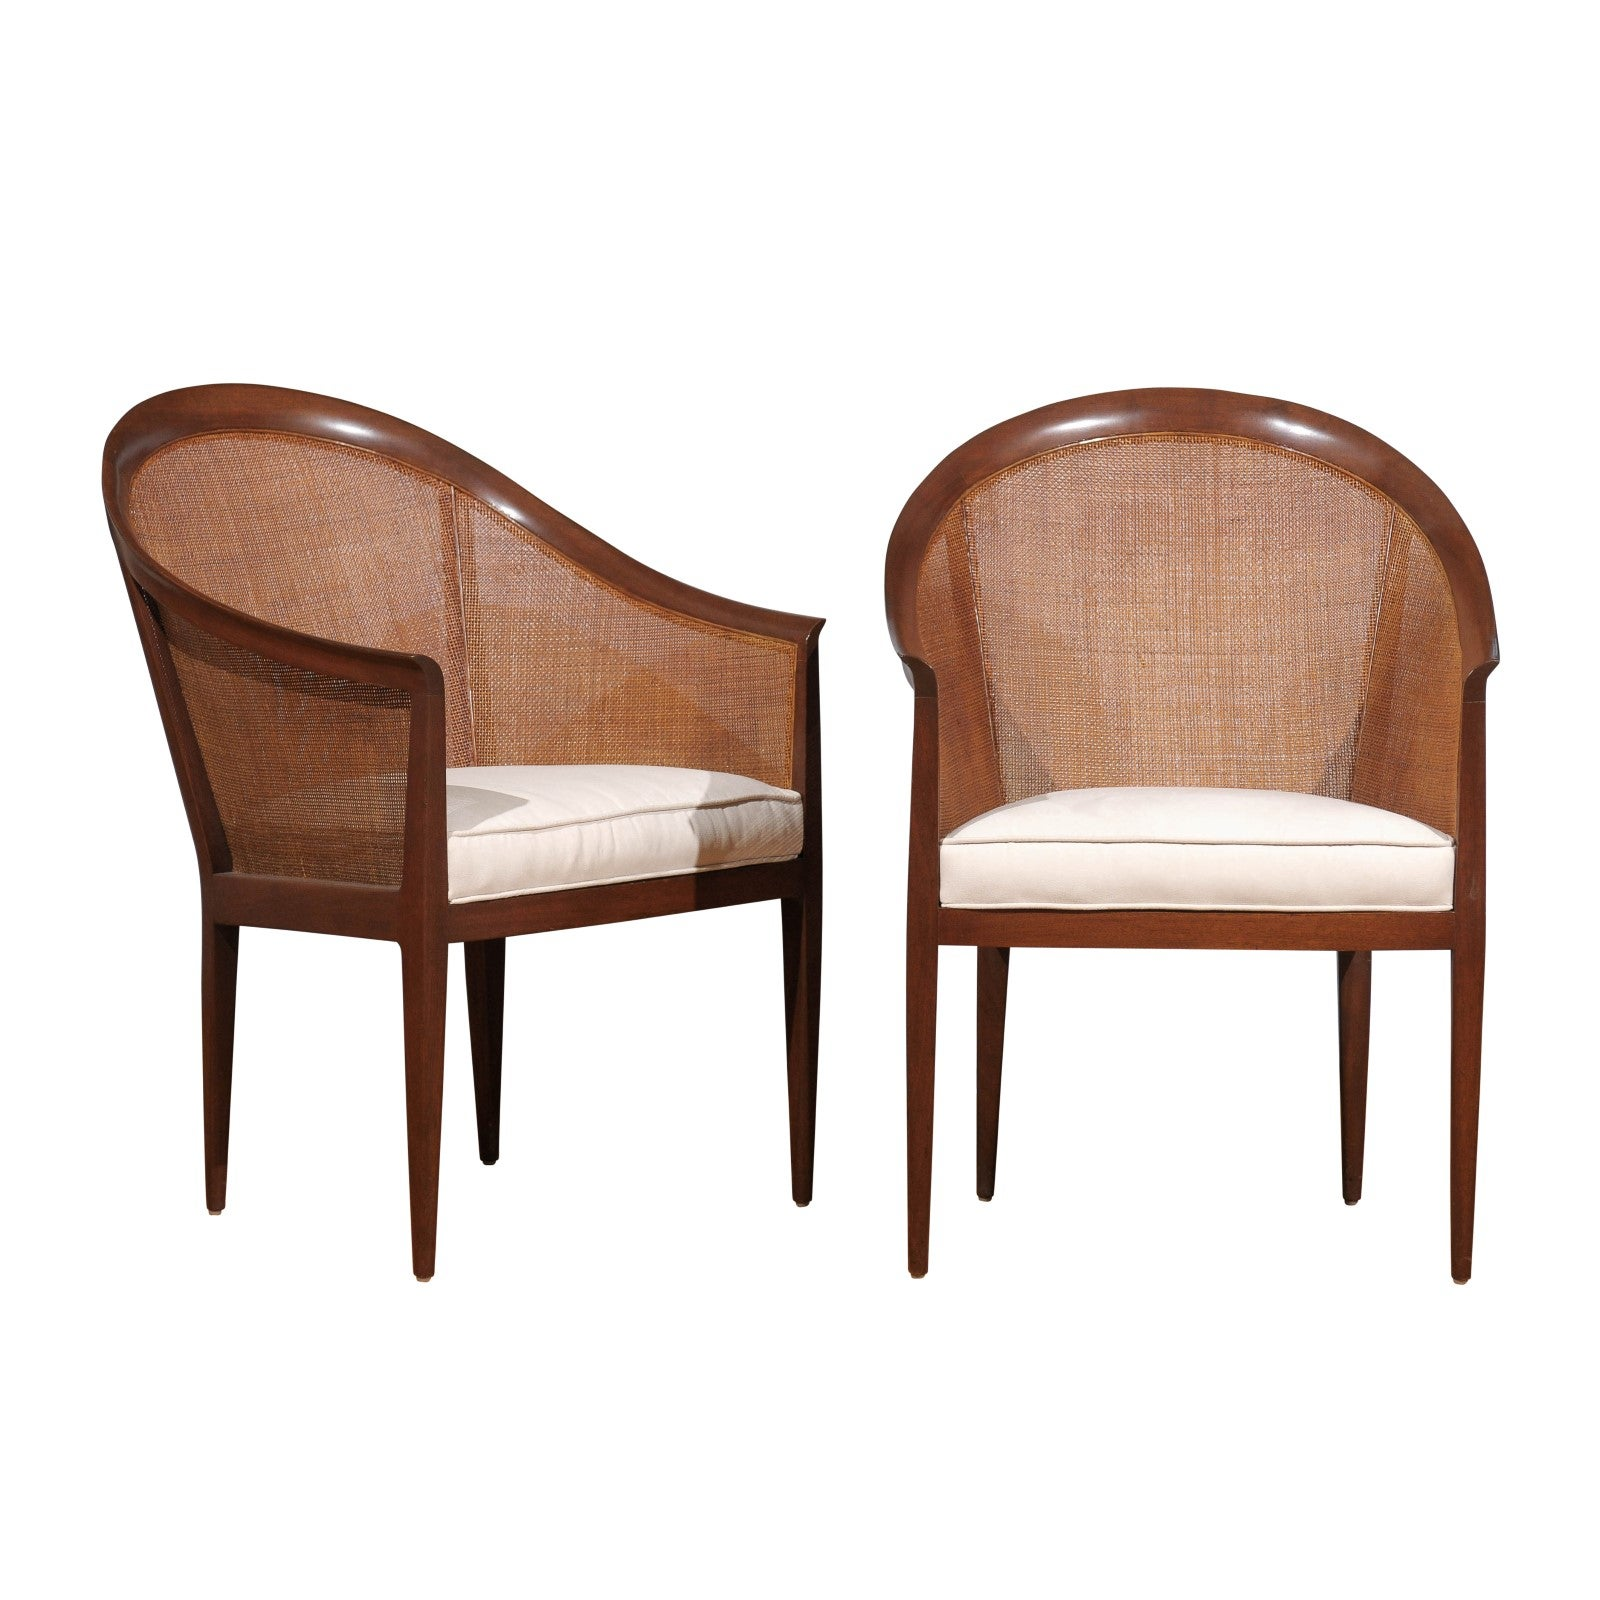 Elegant Restored Pair of Walnut Cane Chairs by Kipp Stewart for Directional